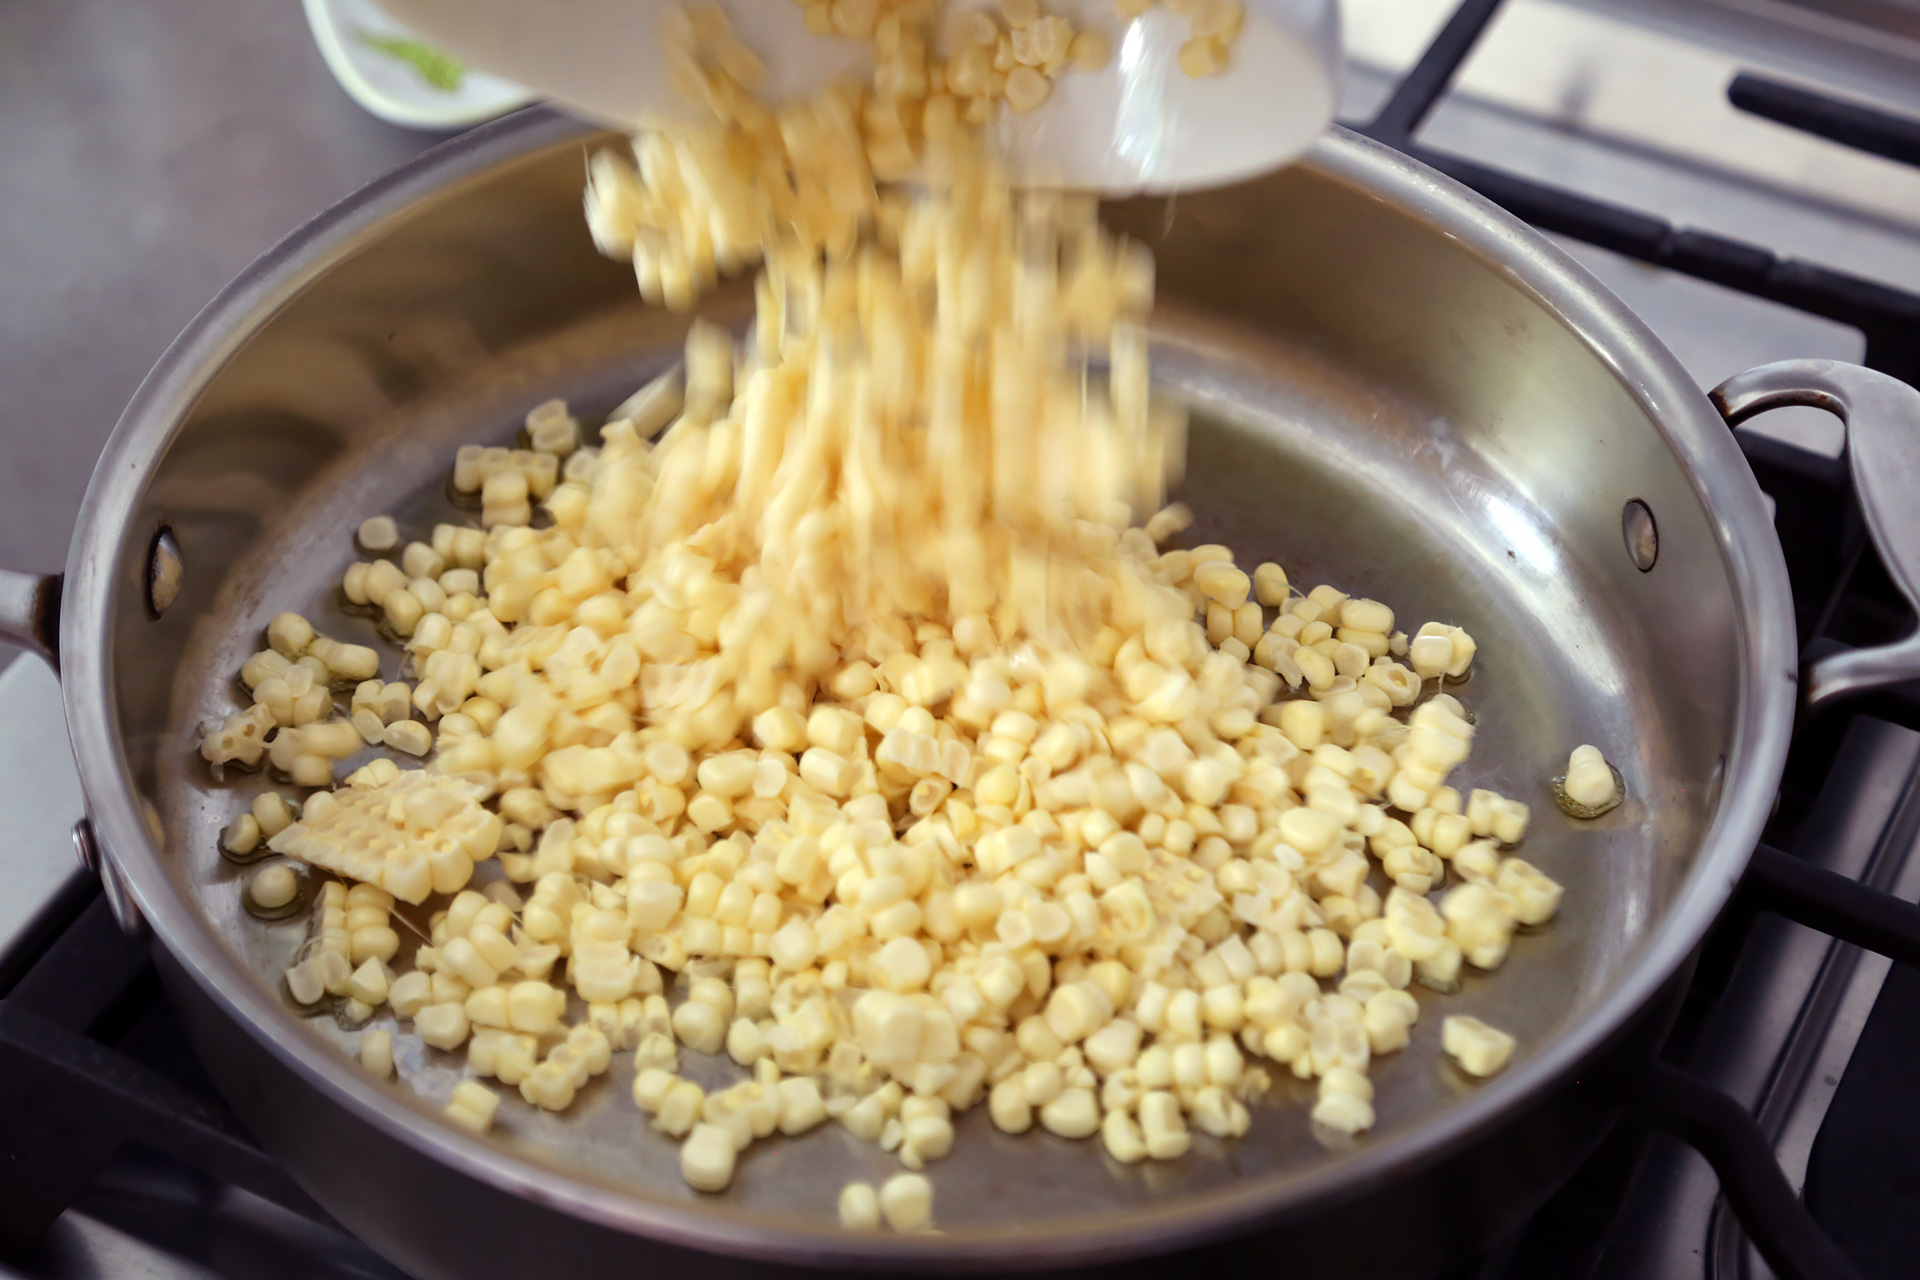 In a large frying pan over medium heat, warm the oil. Add the corn.